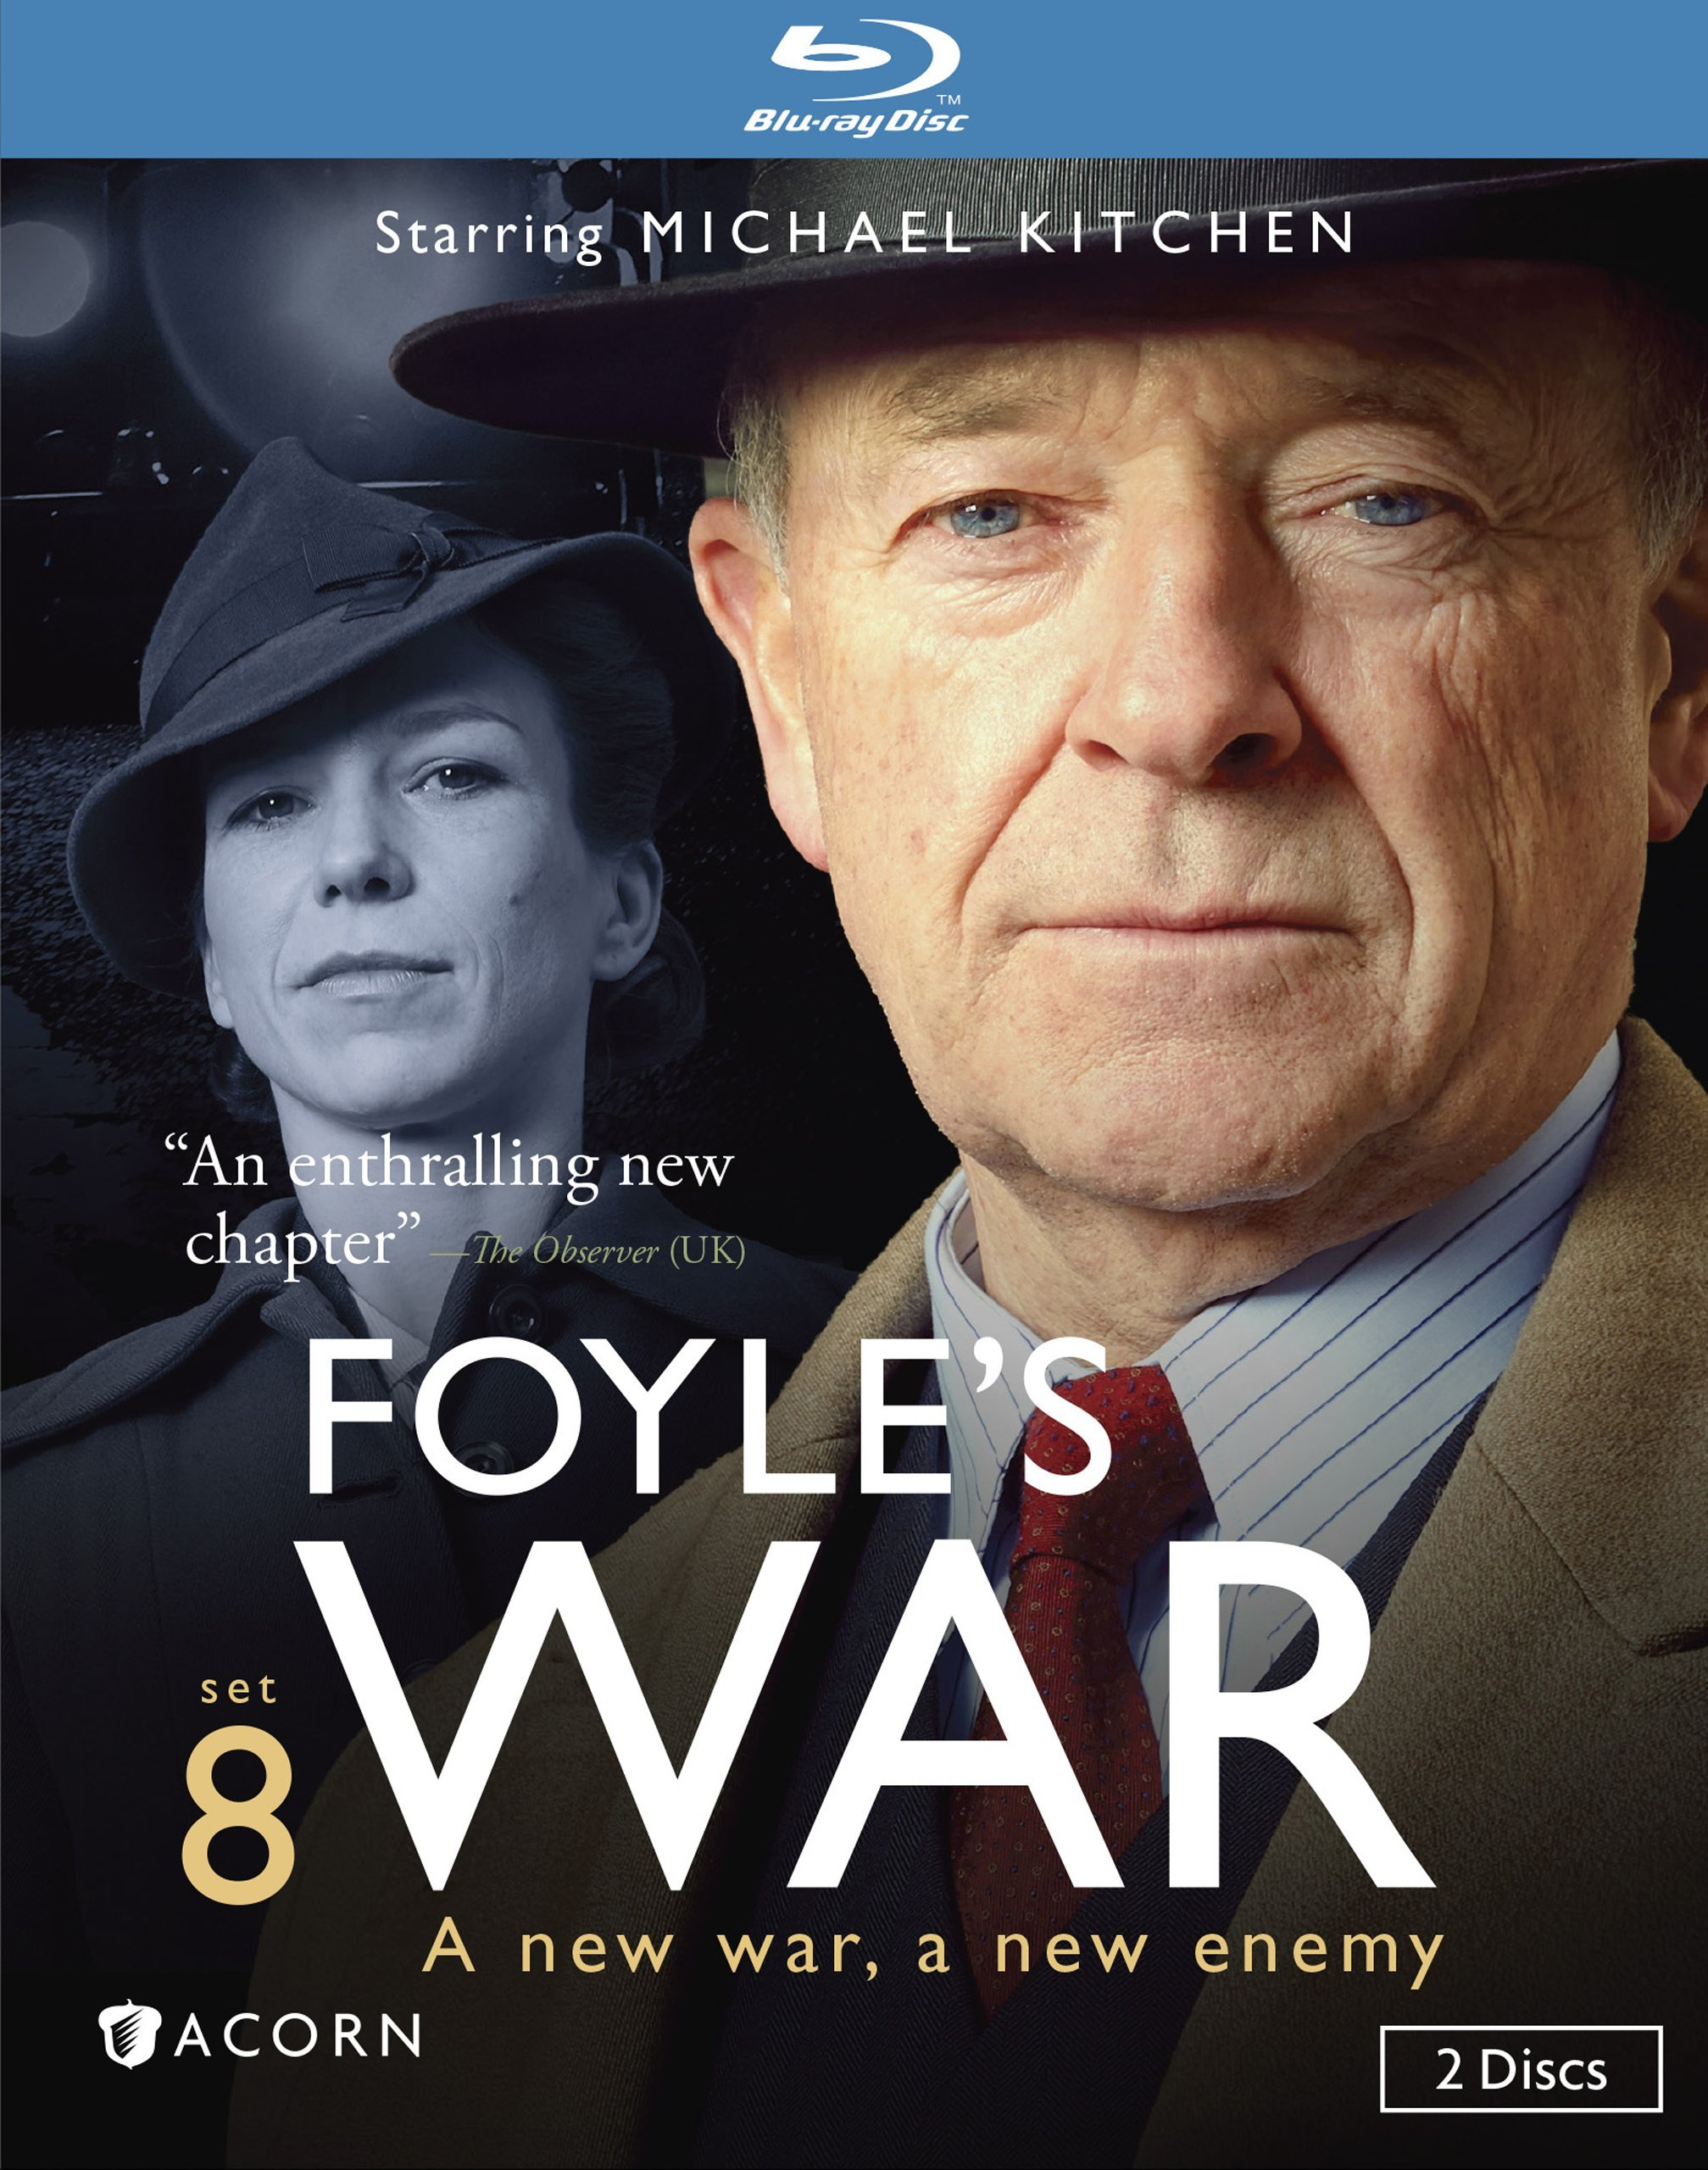 Foyle's War, Set 8 [Blu-ray]